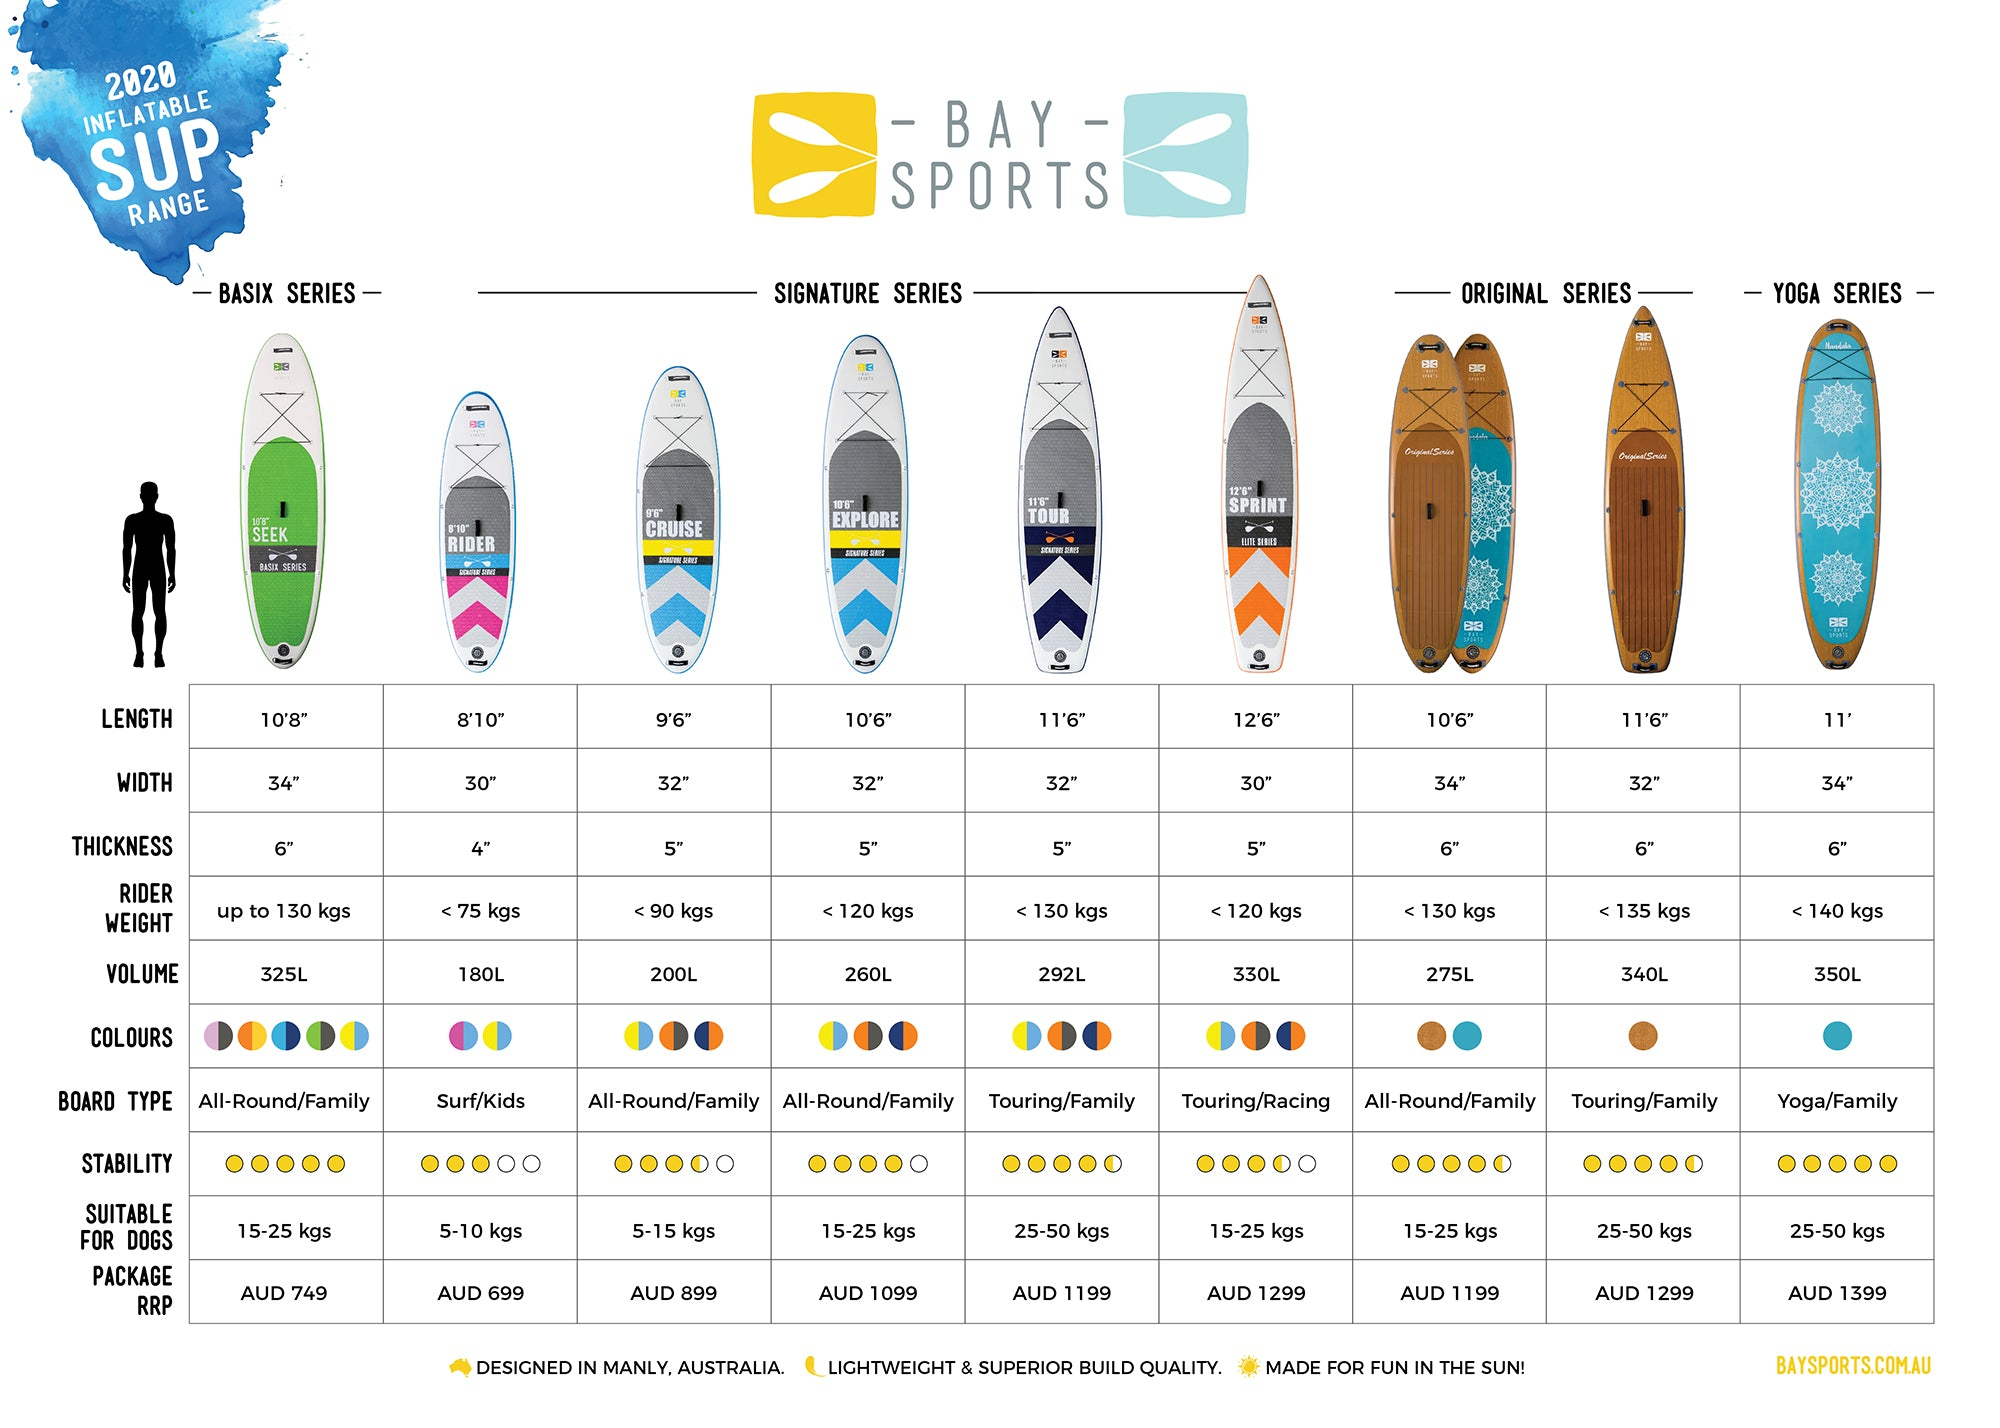 Bay Sports SUP Boards Comparison Table